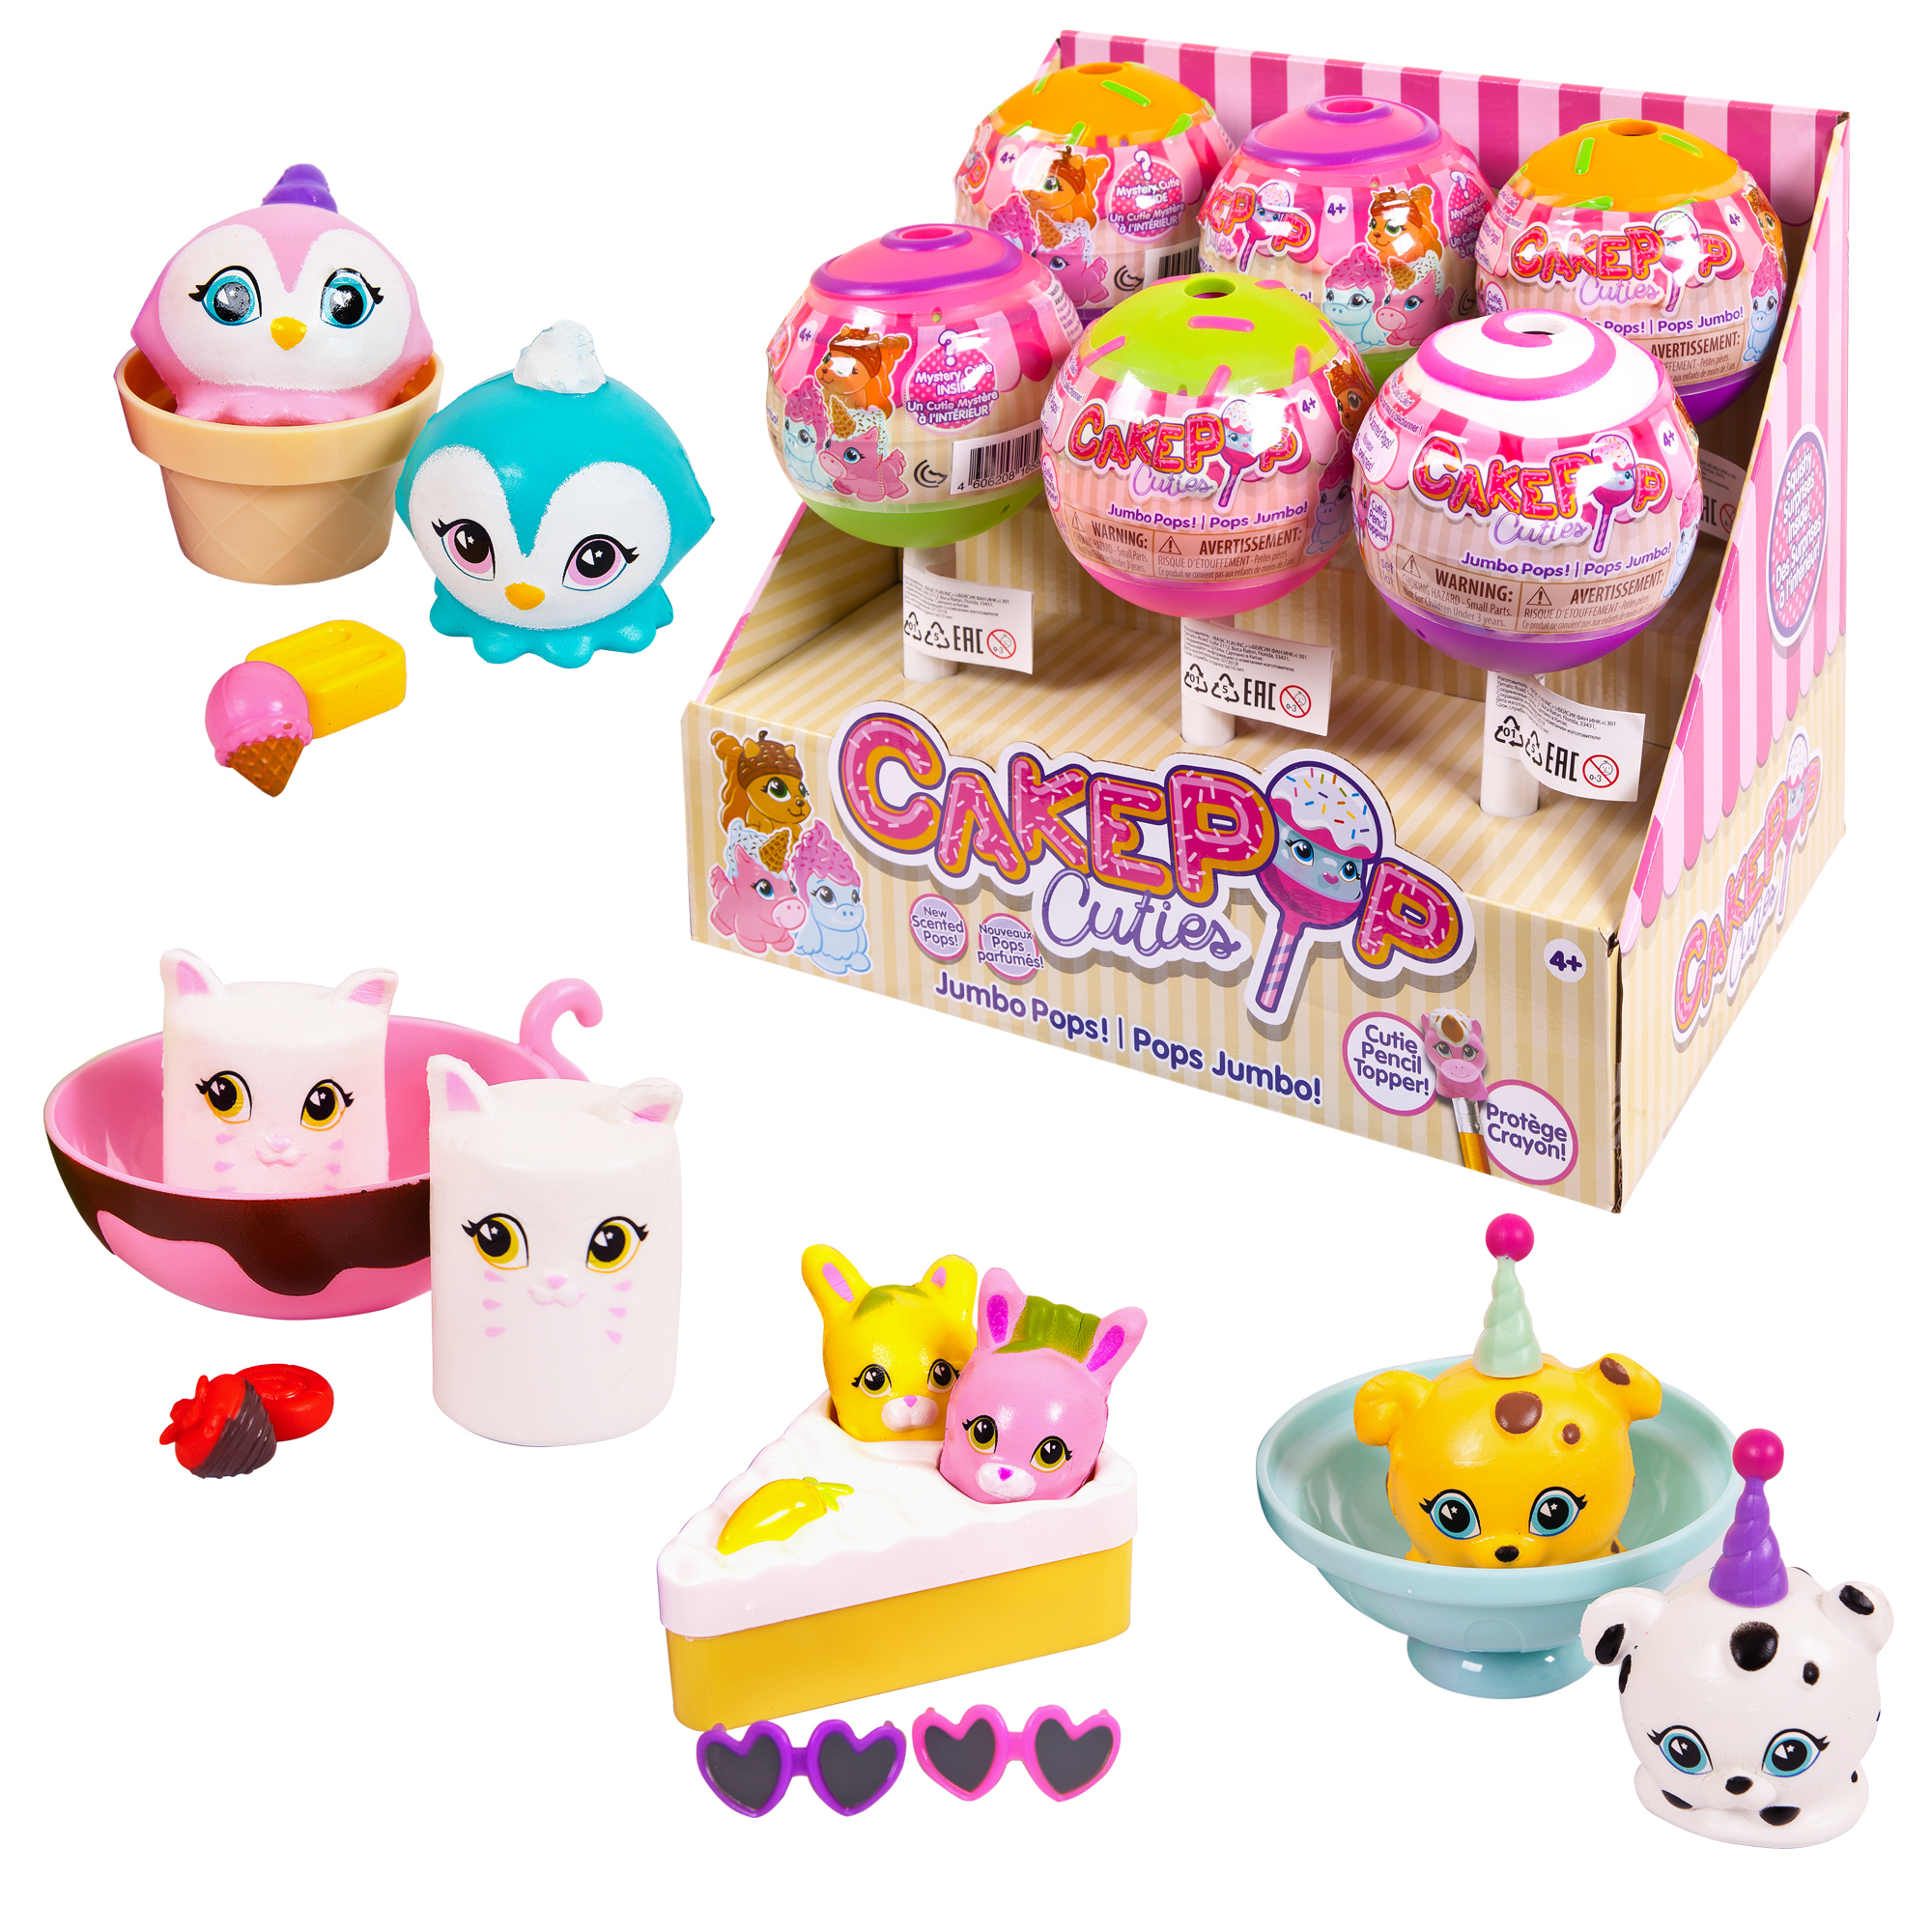 Фигурки животных Cake Pop Cuties «Jumbo Pop Single» 90s pop tour metepec